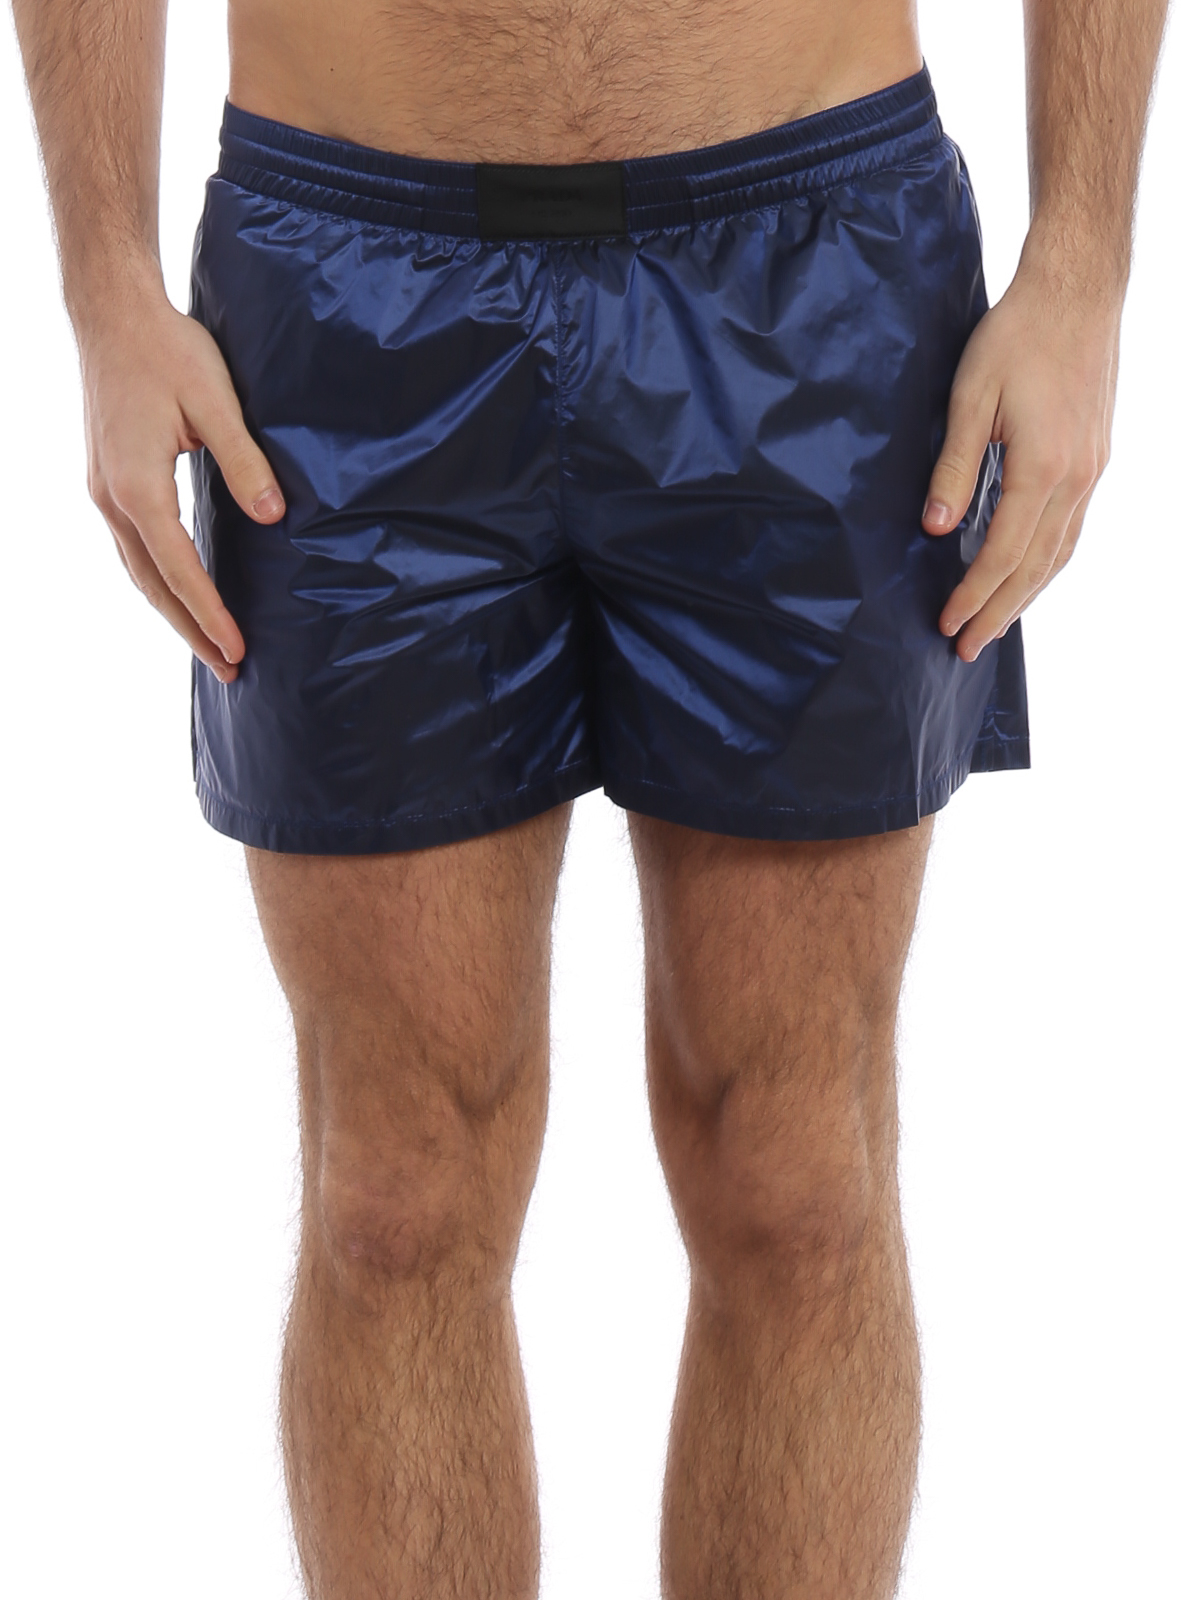 468c2dbe11 iKRIX PRADA: Swim shorts & swimming trunks - Blue microristop nylon swim  shorts